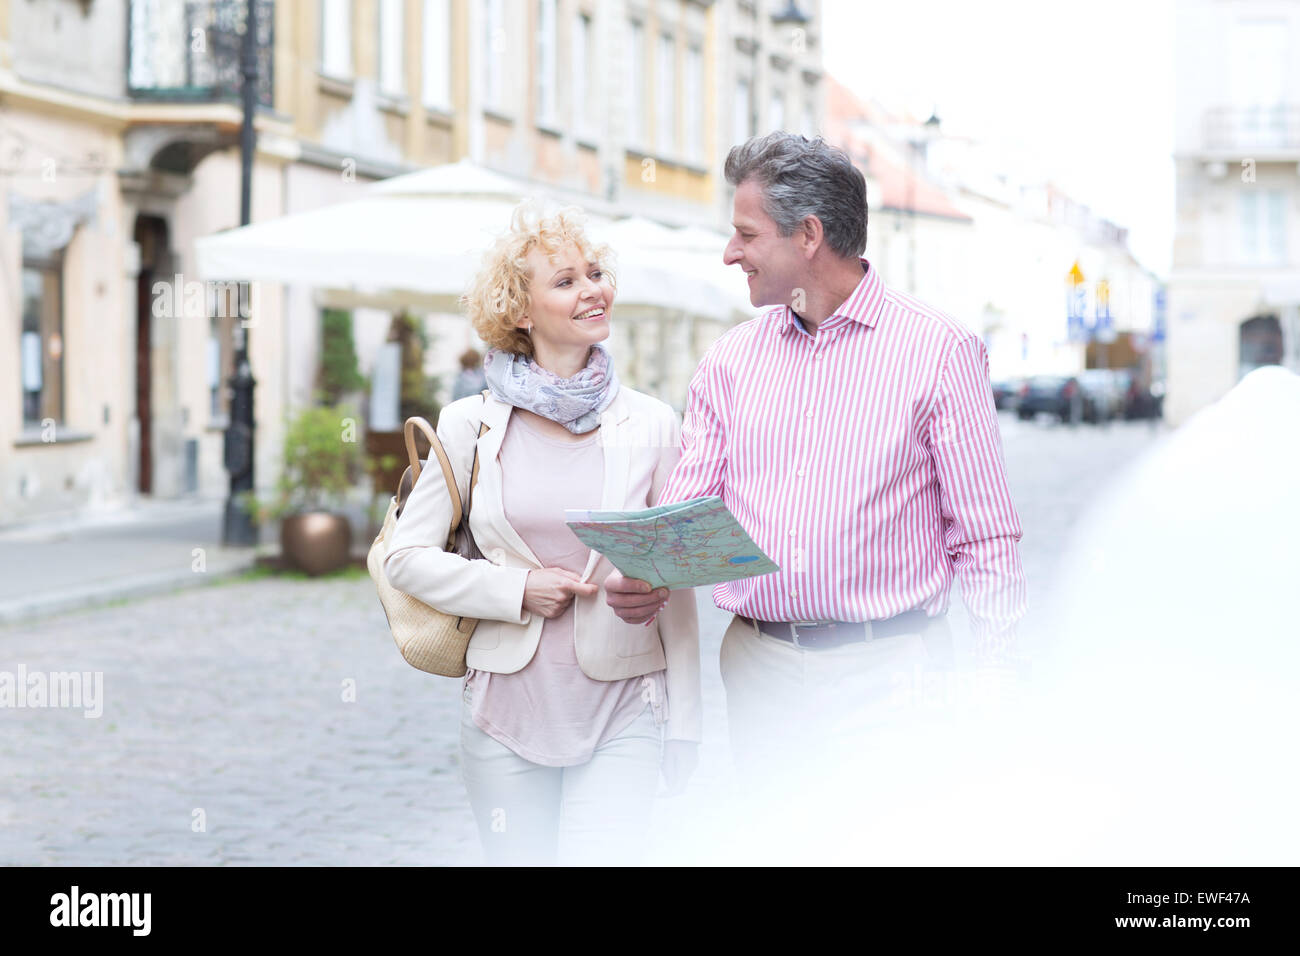 Smiling middle-aged couple with map looking at each other while walking in city - Stock Image